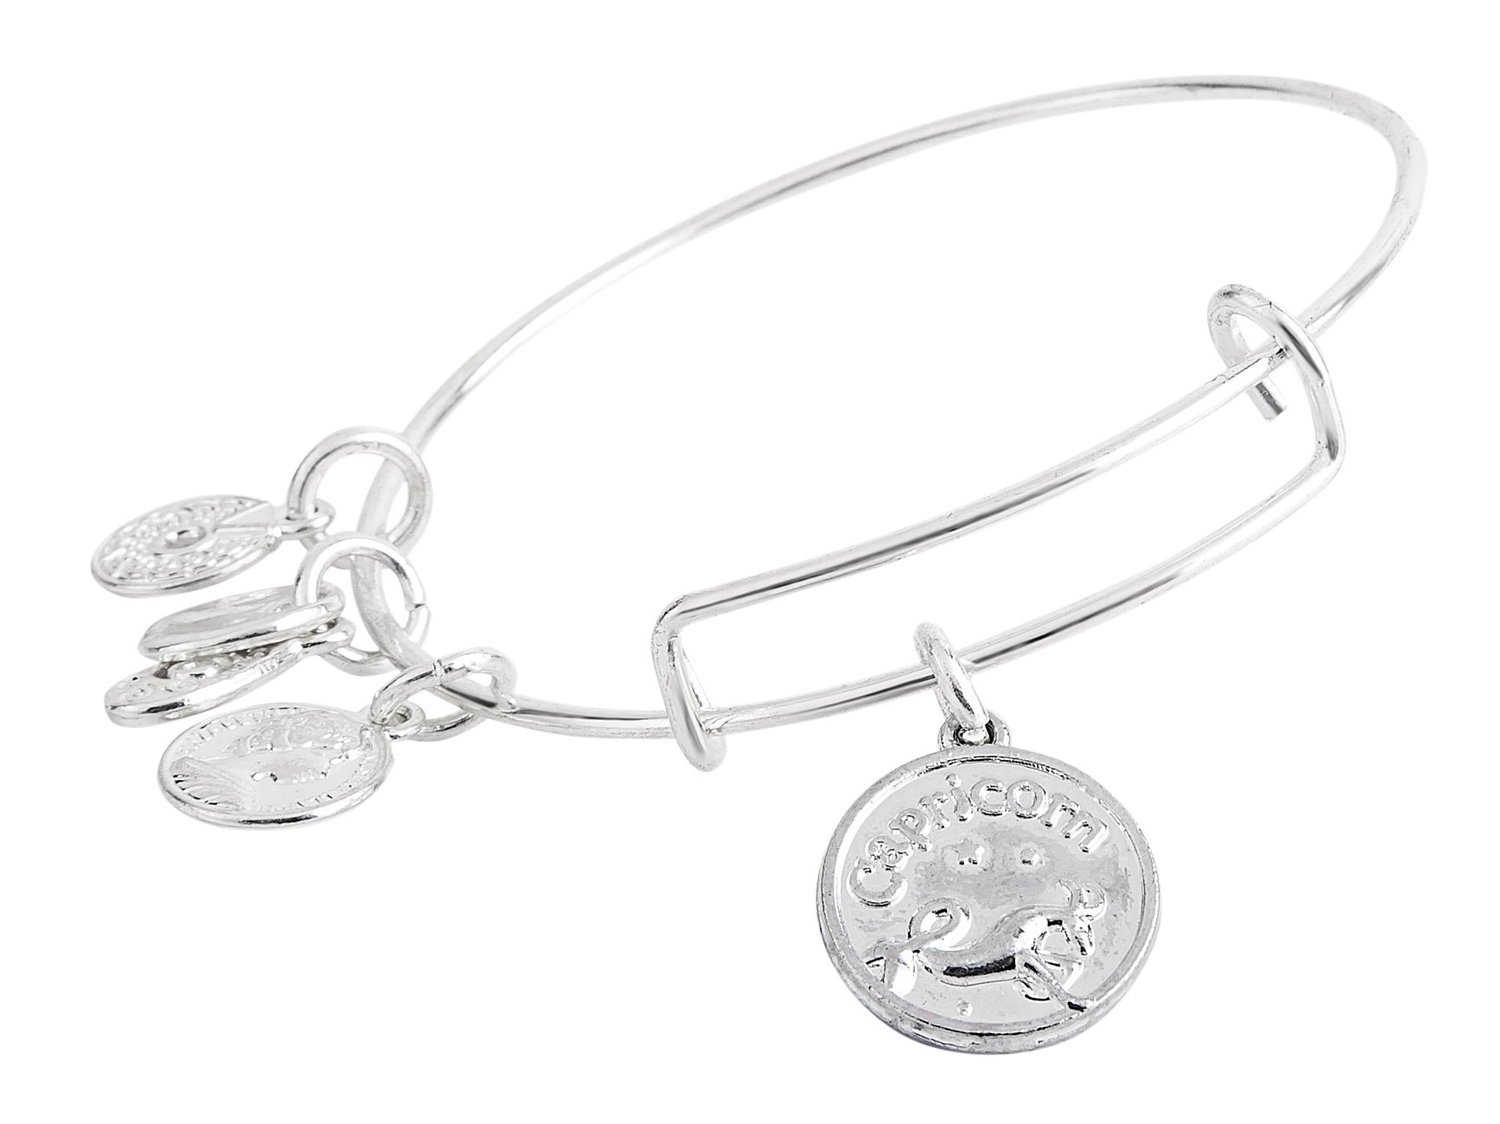 Capricorn Pendant Bangle Expandable Bracelet Shiny Silver Tone